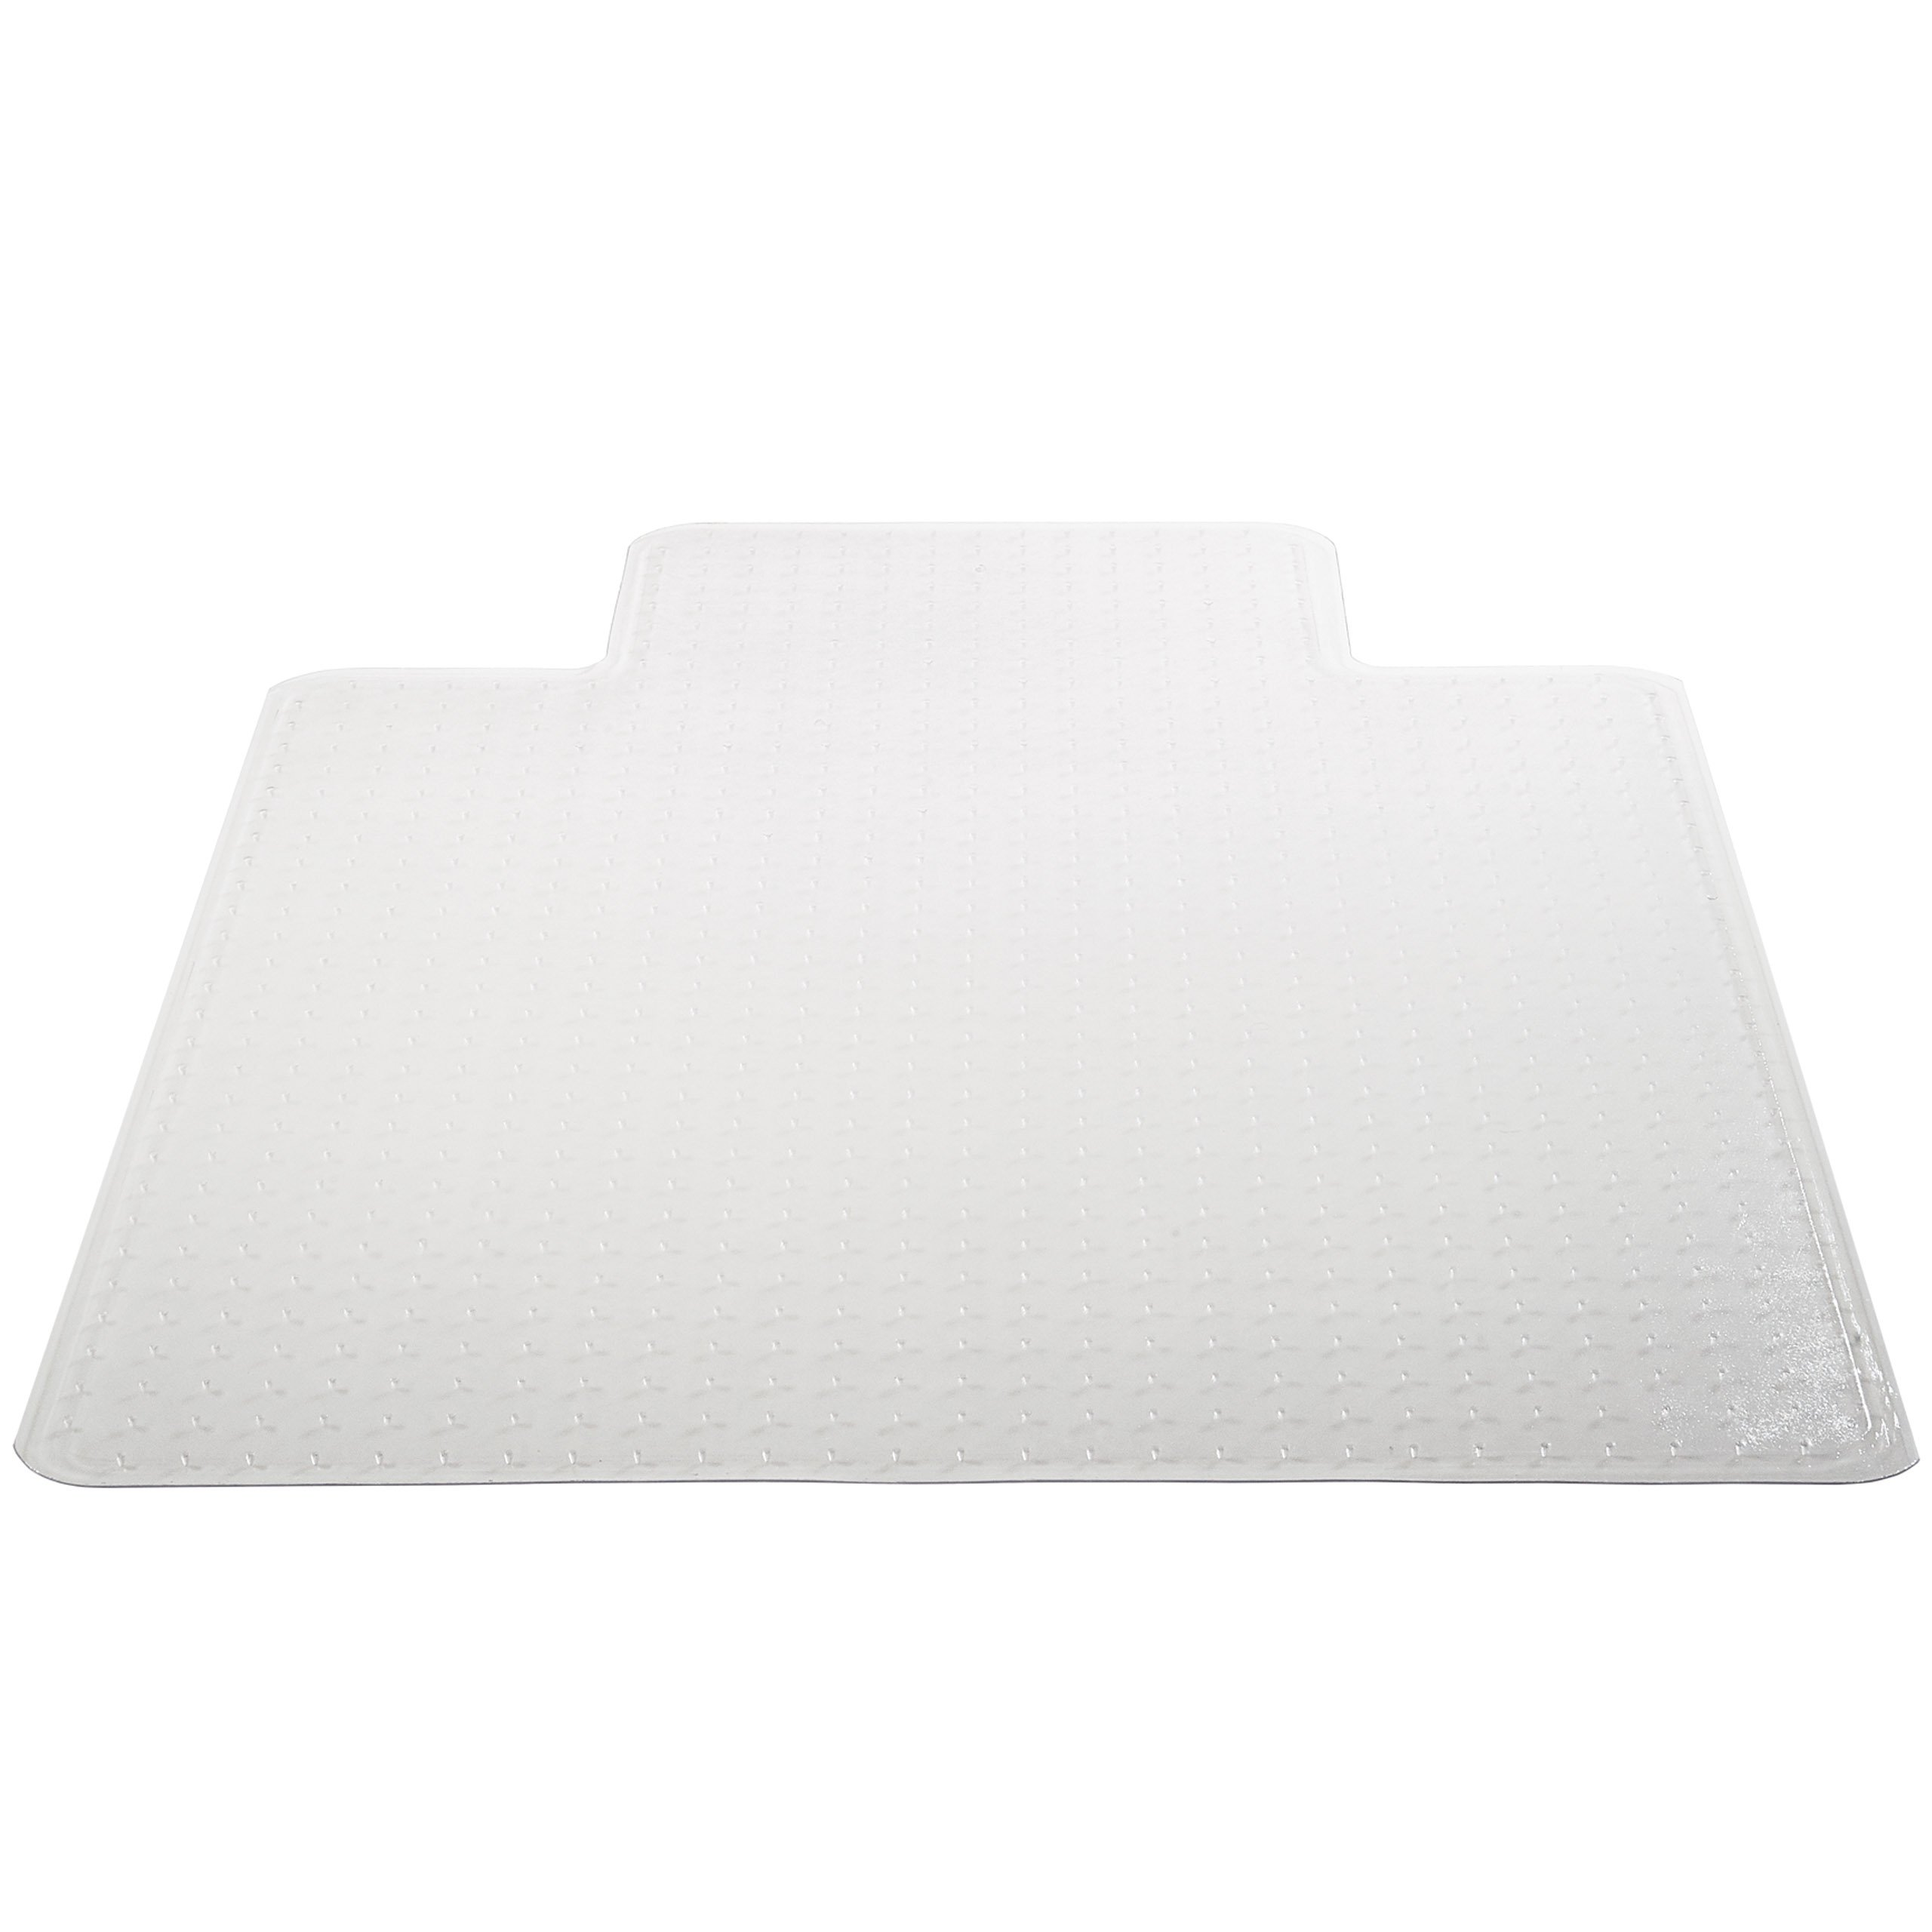 Deflecto DuraMat Clear Chair Mat, Low Pile Carpet Use, Rectangle With Lip, Beveled Edge, 45 x 53 Inches (CM13233COM)